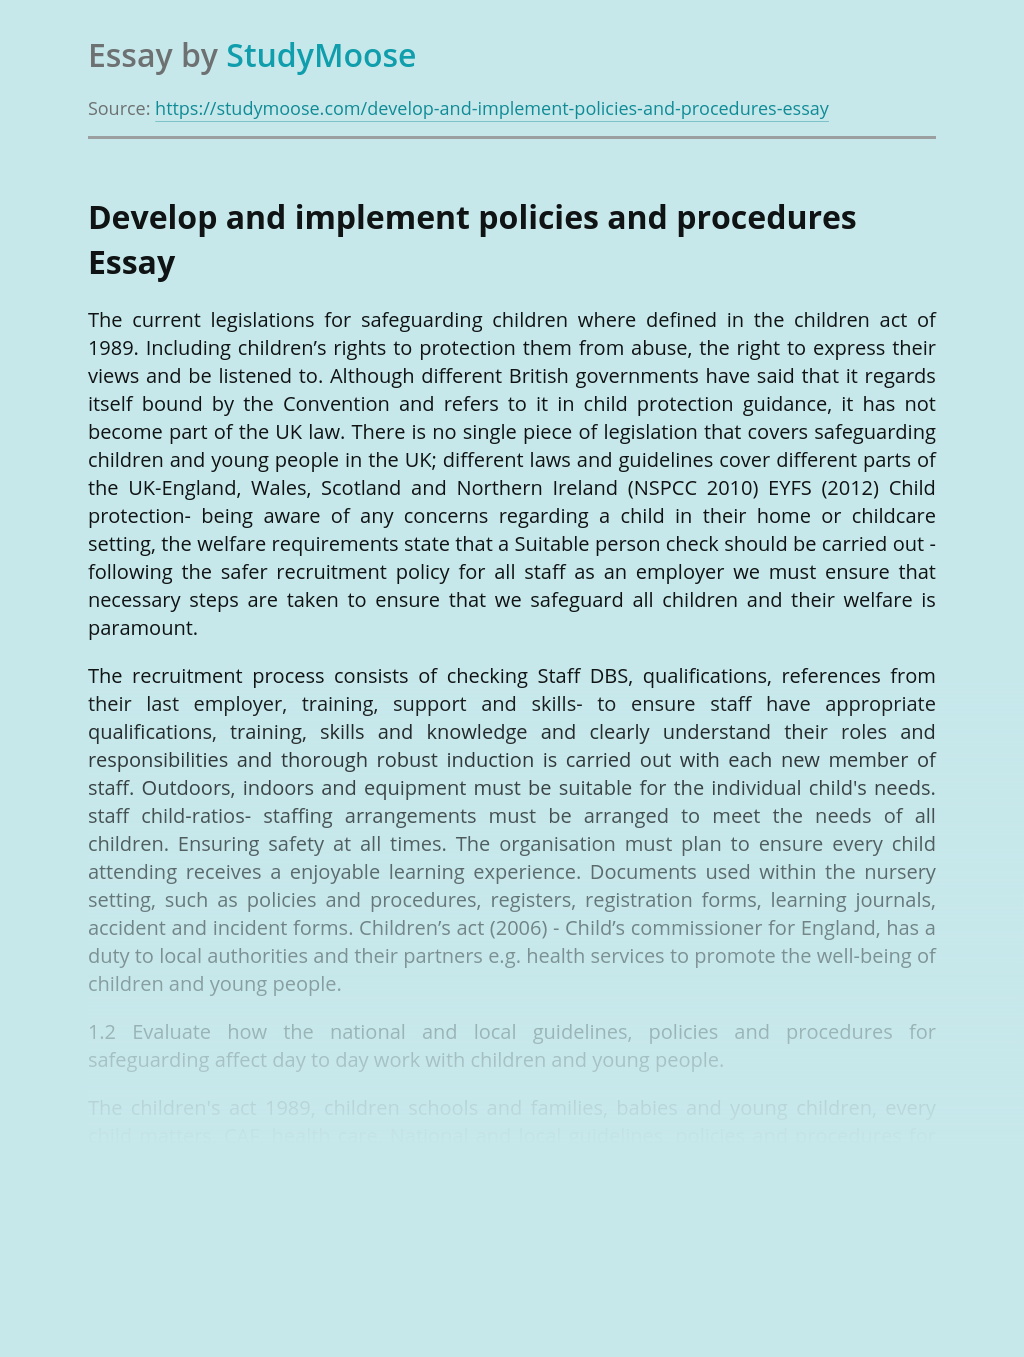 Implementing Policies and Procedures for Safeguarding Children